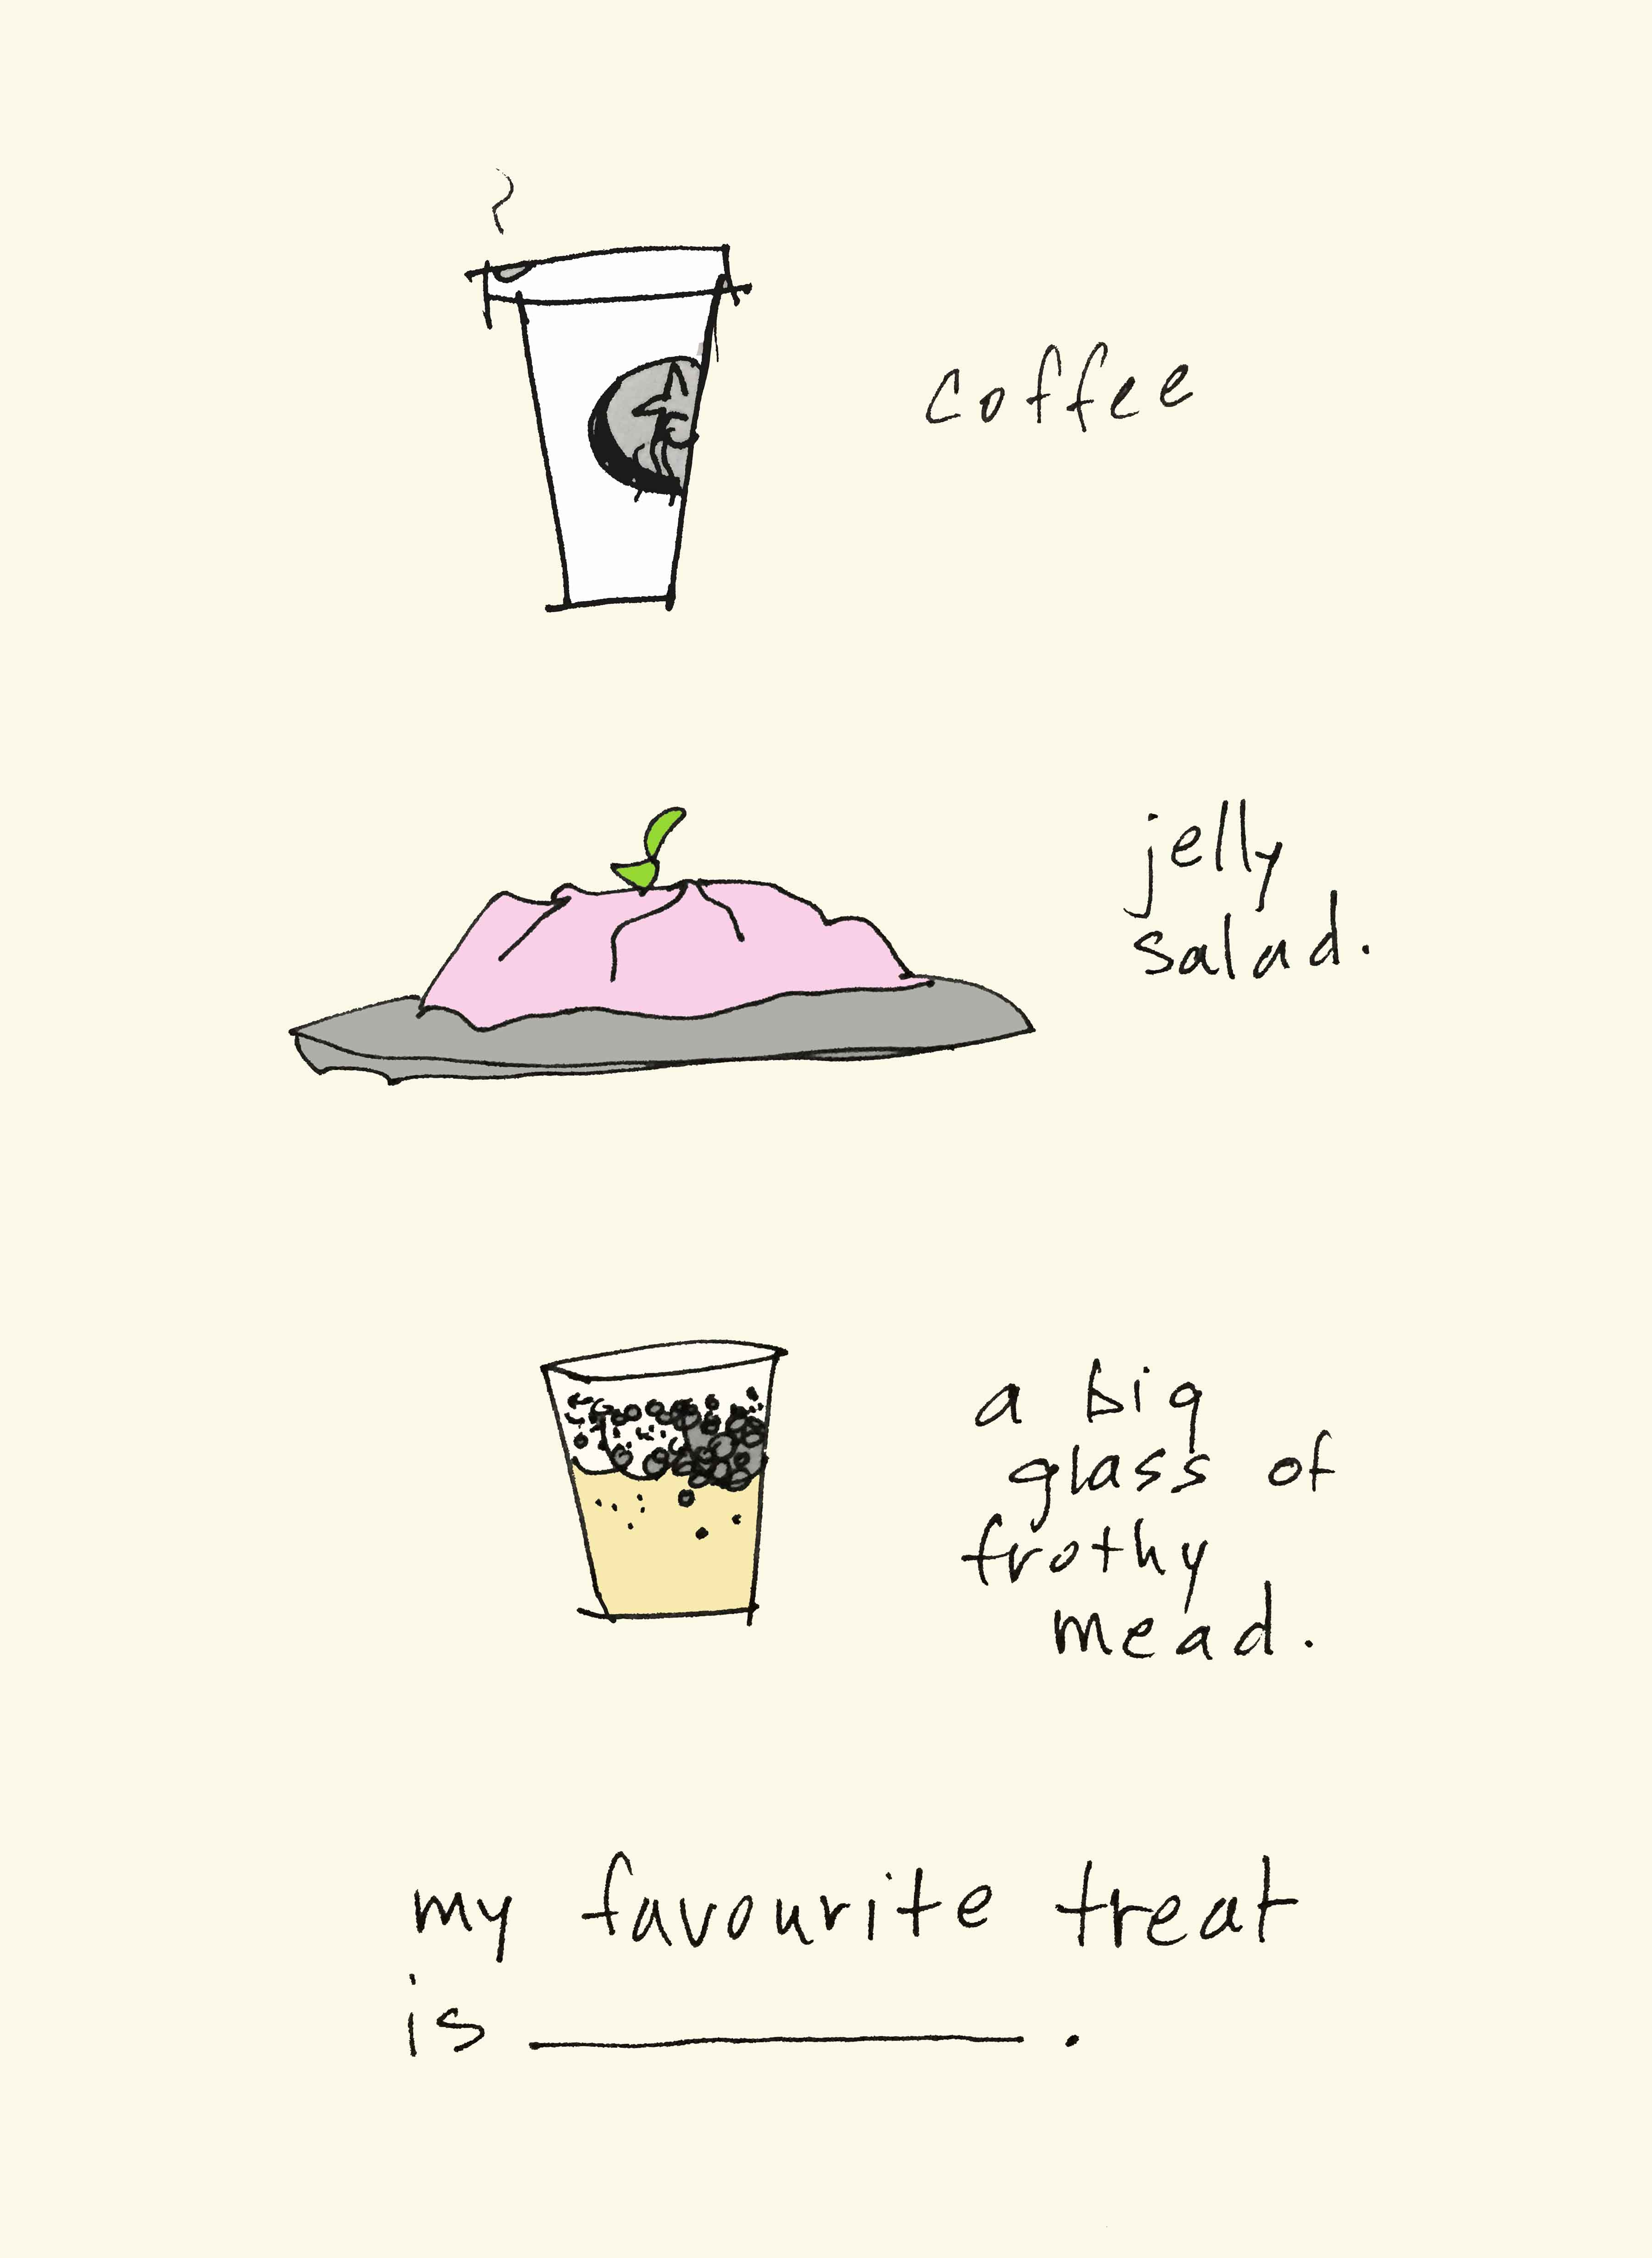 art every day number 178 illustration drawing words favourite treat